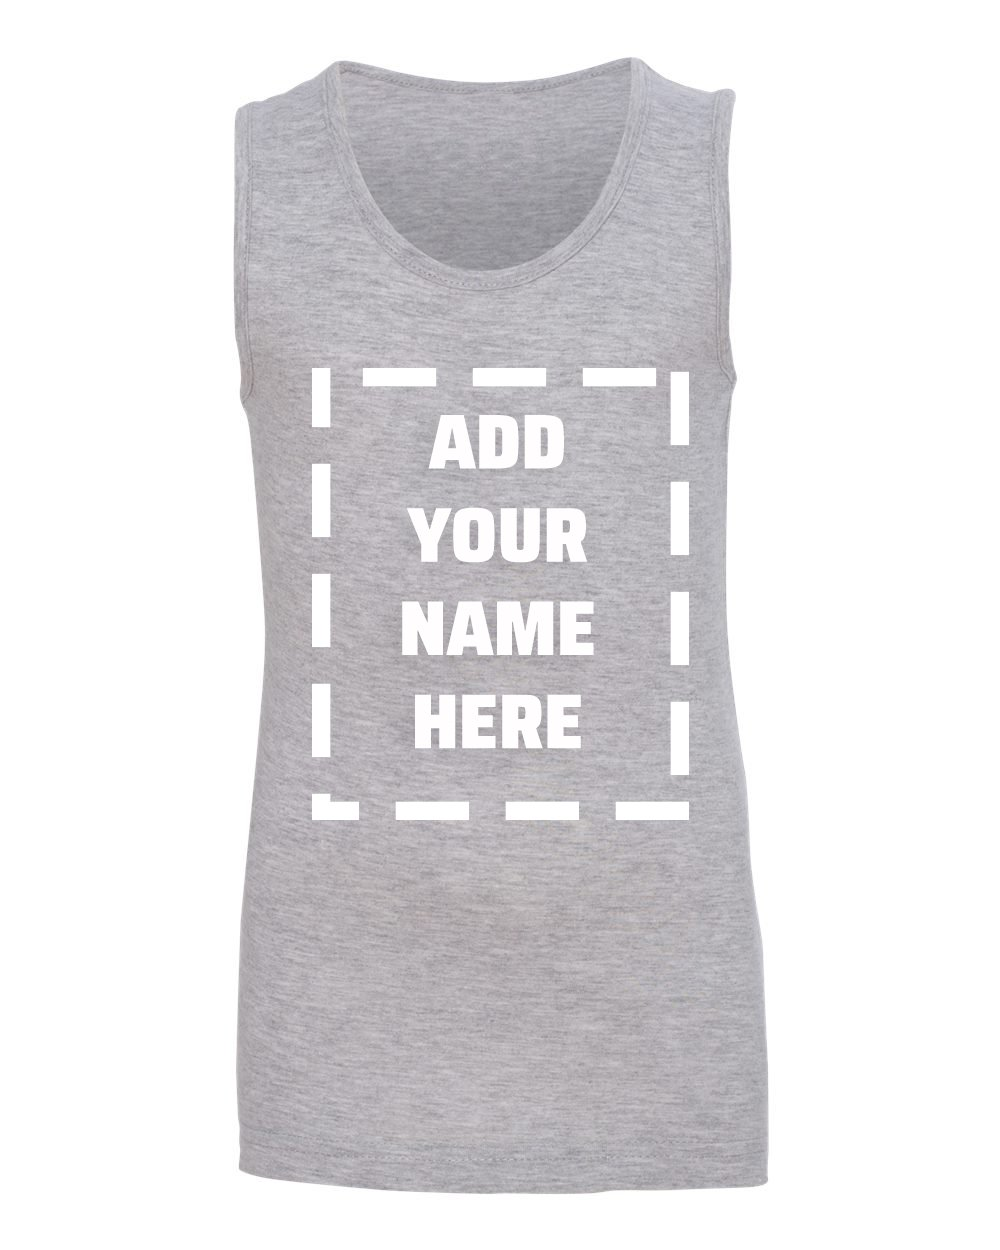 Marky G Apparel Personalize Add Your Own Name Fine Jersey Tank